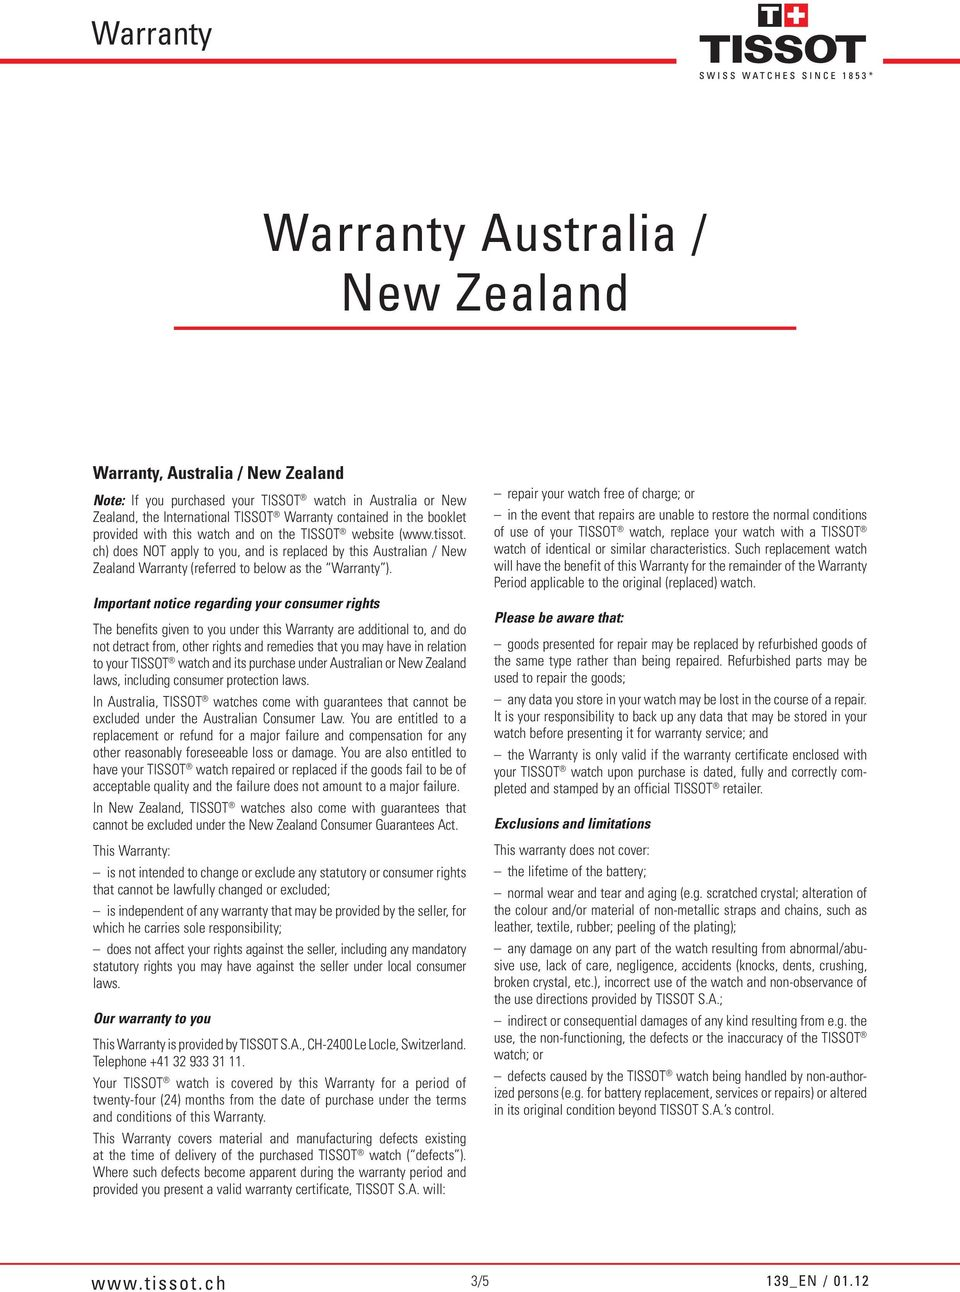 Important notice regarding your consumer rights The benefits given to you under this Warranty are additional to, and do not detract from, other rights and remedies that you may have in relation to